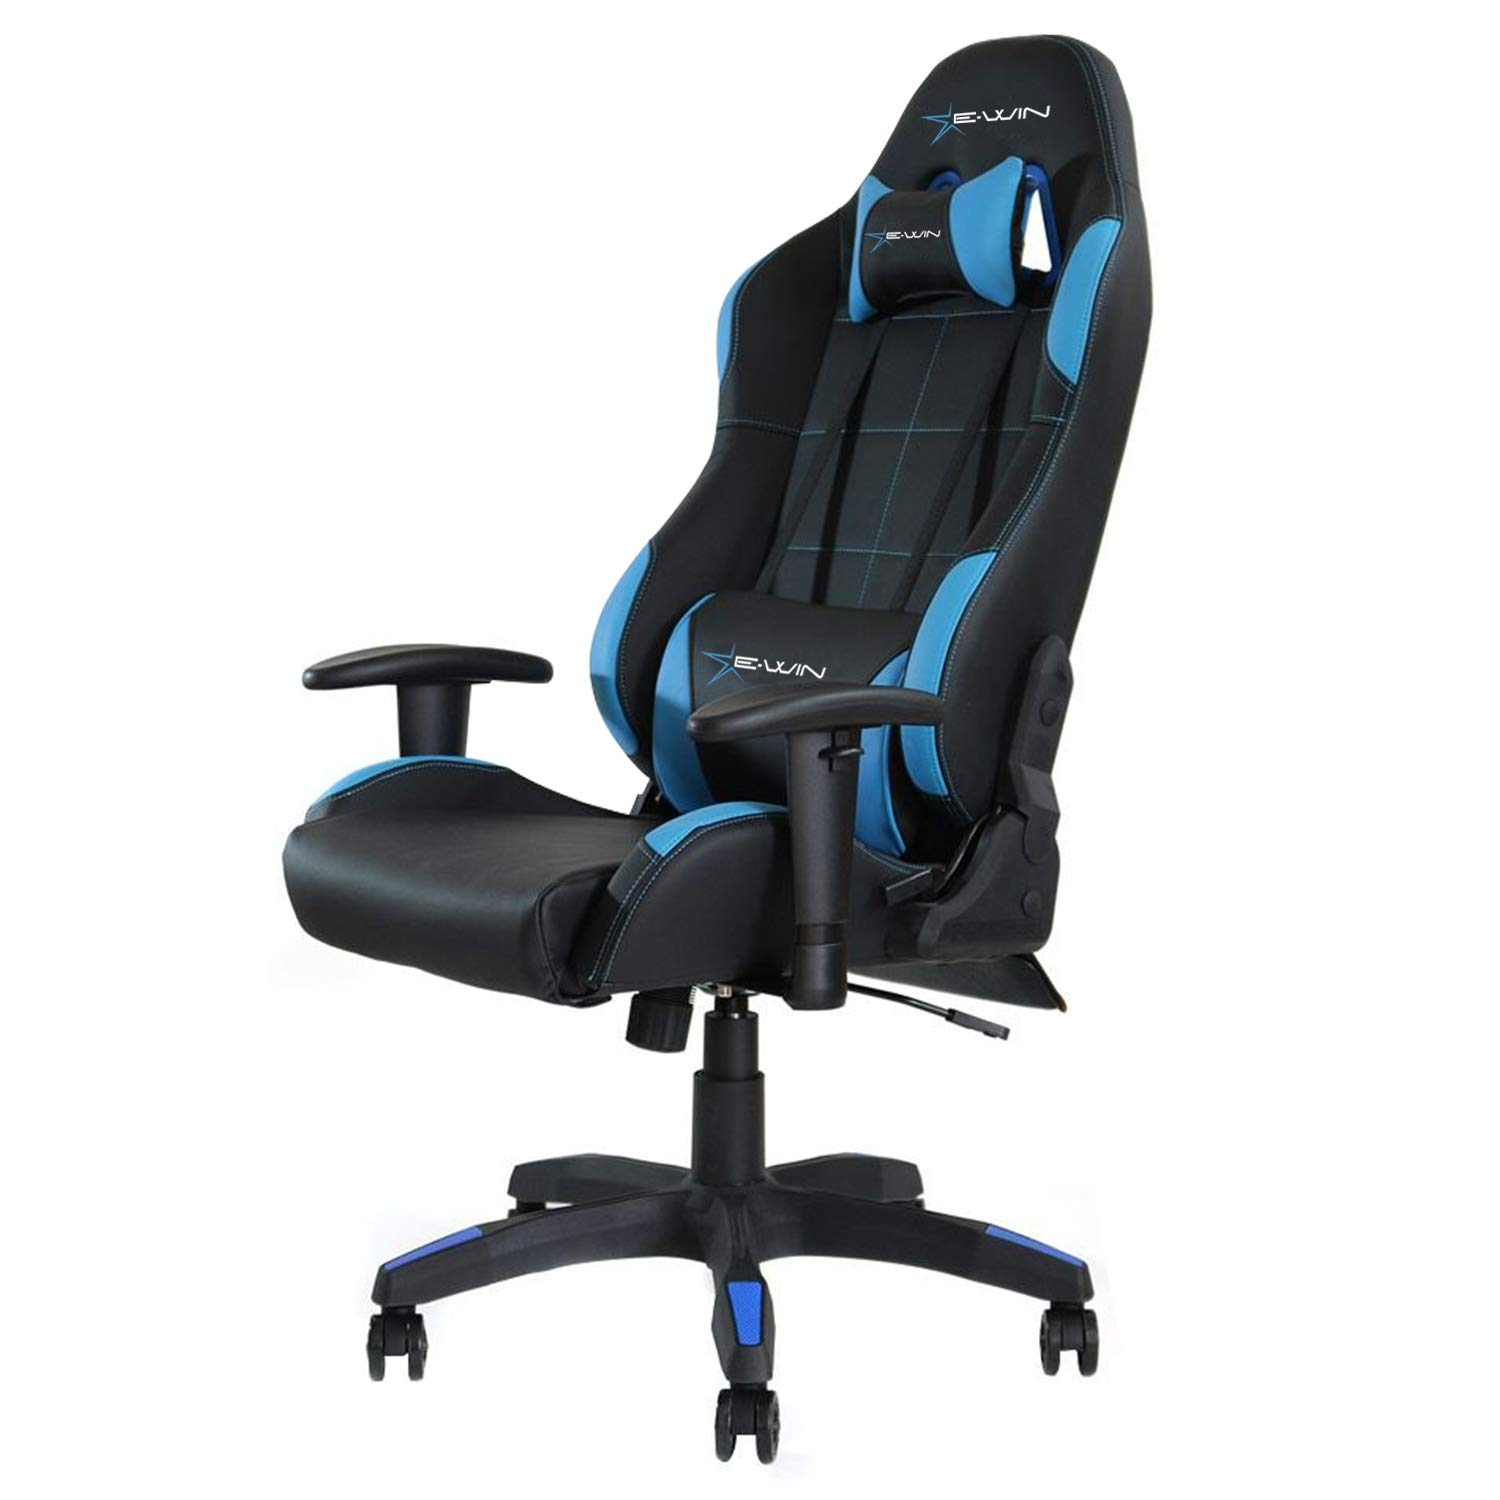 E-WIN Gaming Chair Ergonomic High Back PU Leather Racing Style with Adjustable Armrest and Back Recliner Swivel Rocker Office Chair Black Blue